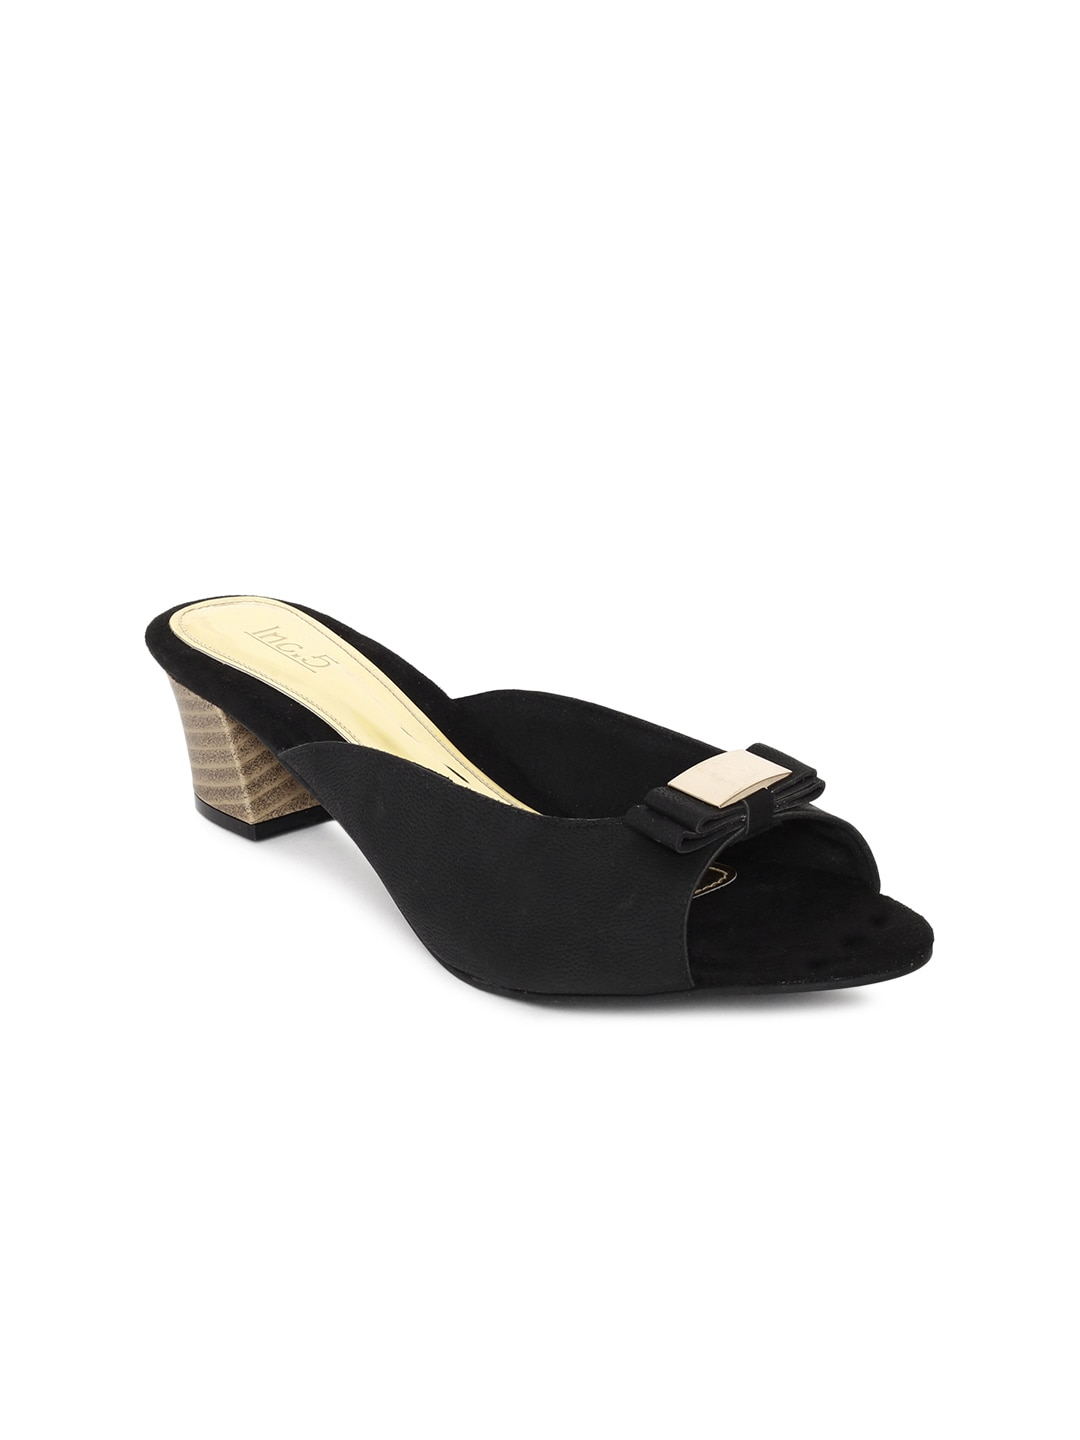 b95f5de5138 Inc 5 Heels - Buy Inc 5 Heels Online in India